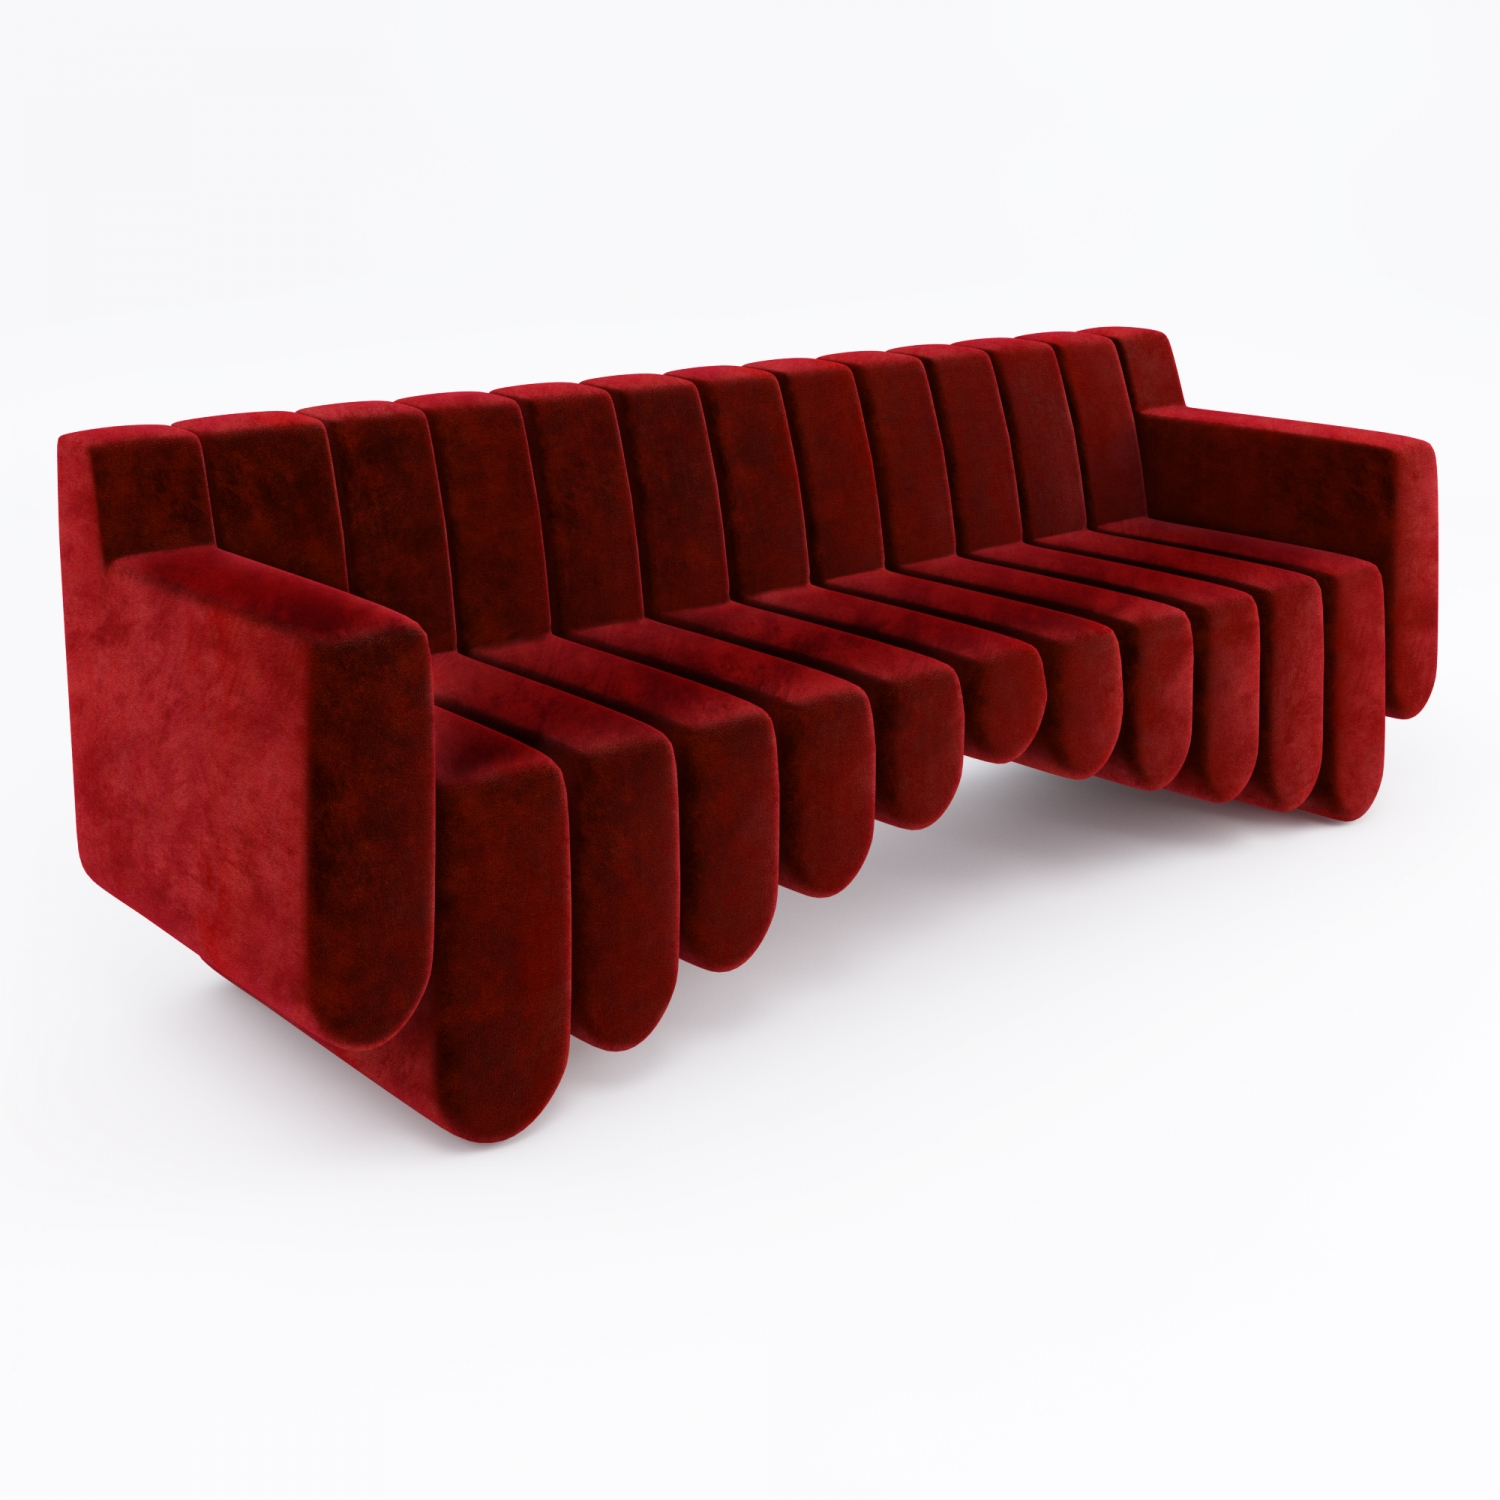 Product Visualisation for a Sound Sofa in Red